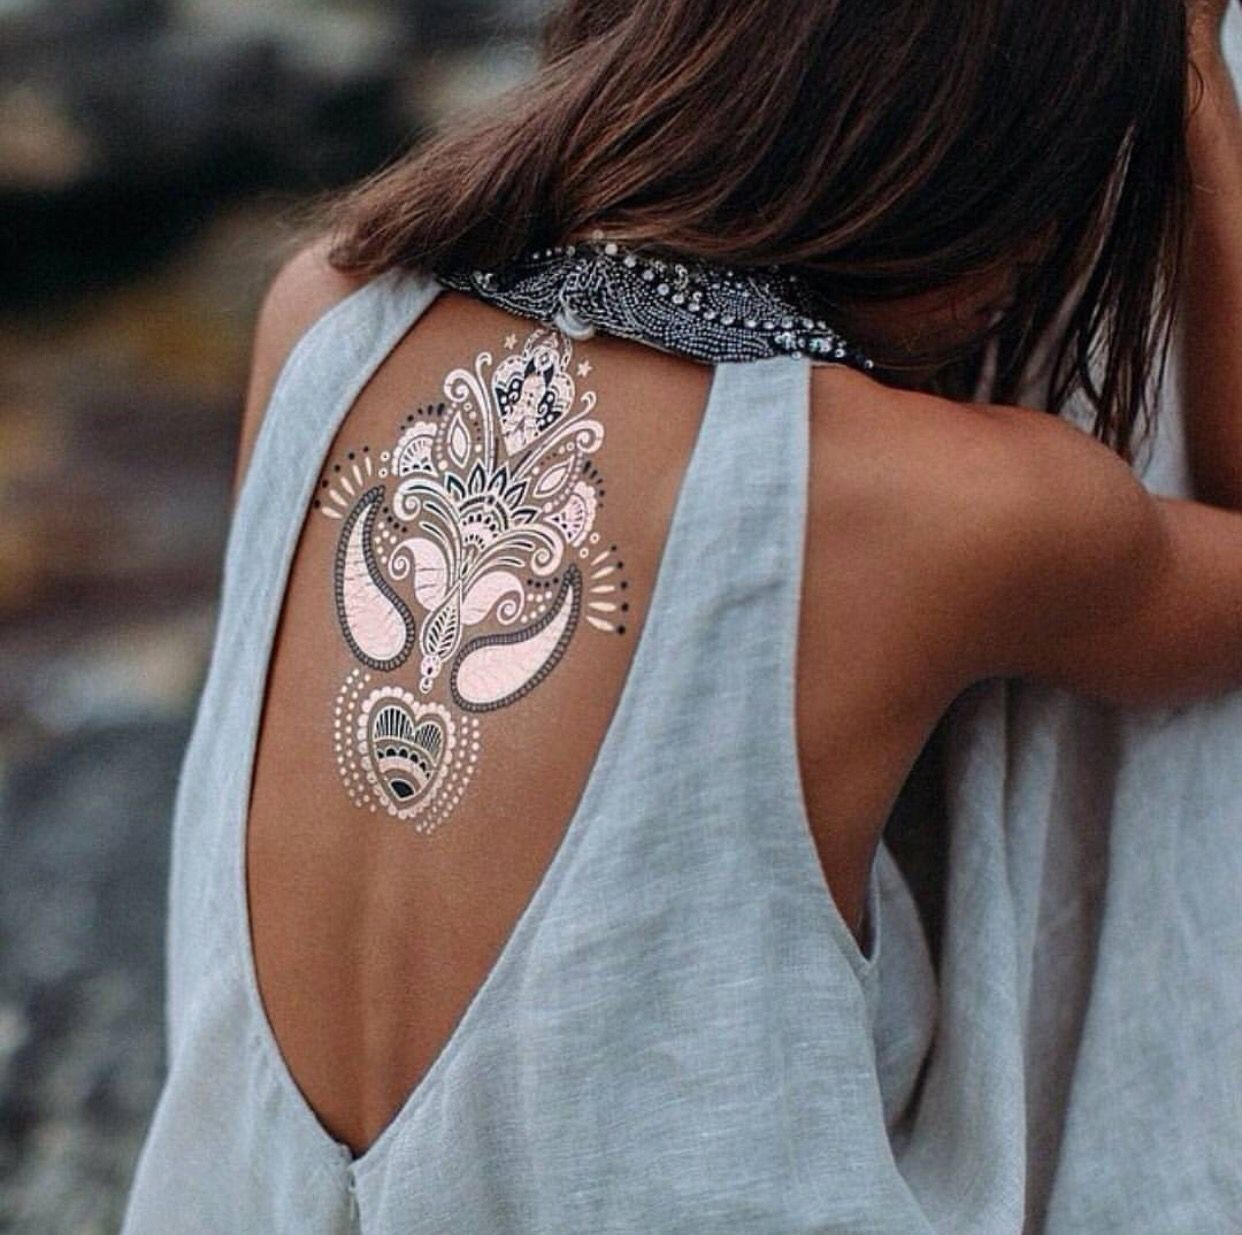 bef09a844d0a1 What do you think about this type of permanent tattoos? I tried this out  this summer and I really love it metallic tattoos